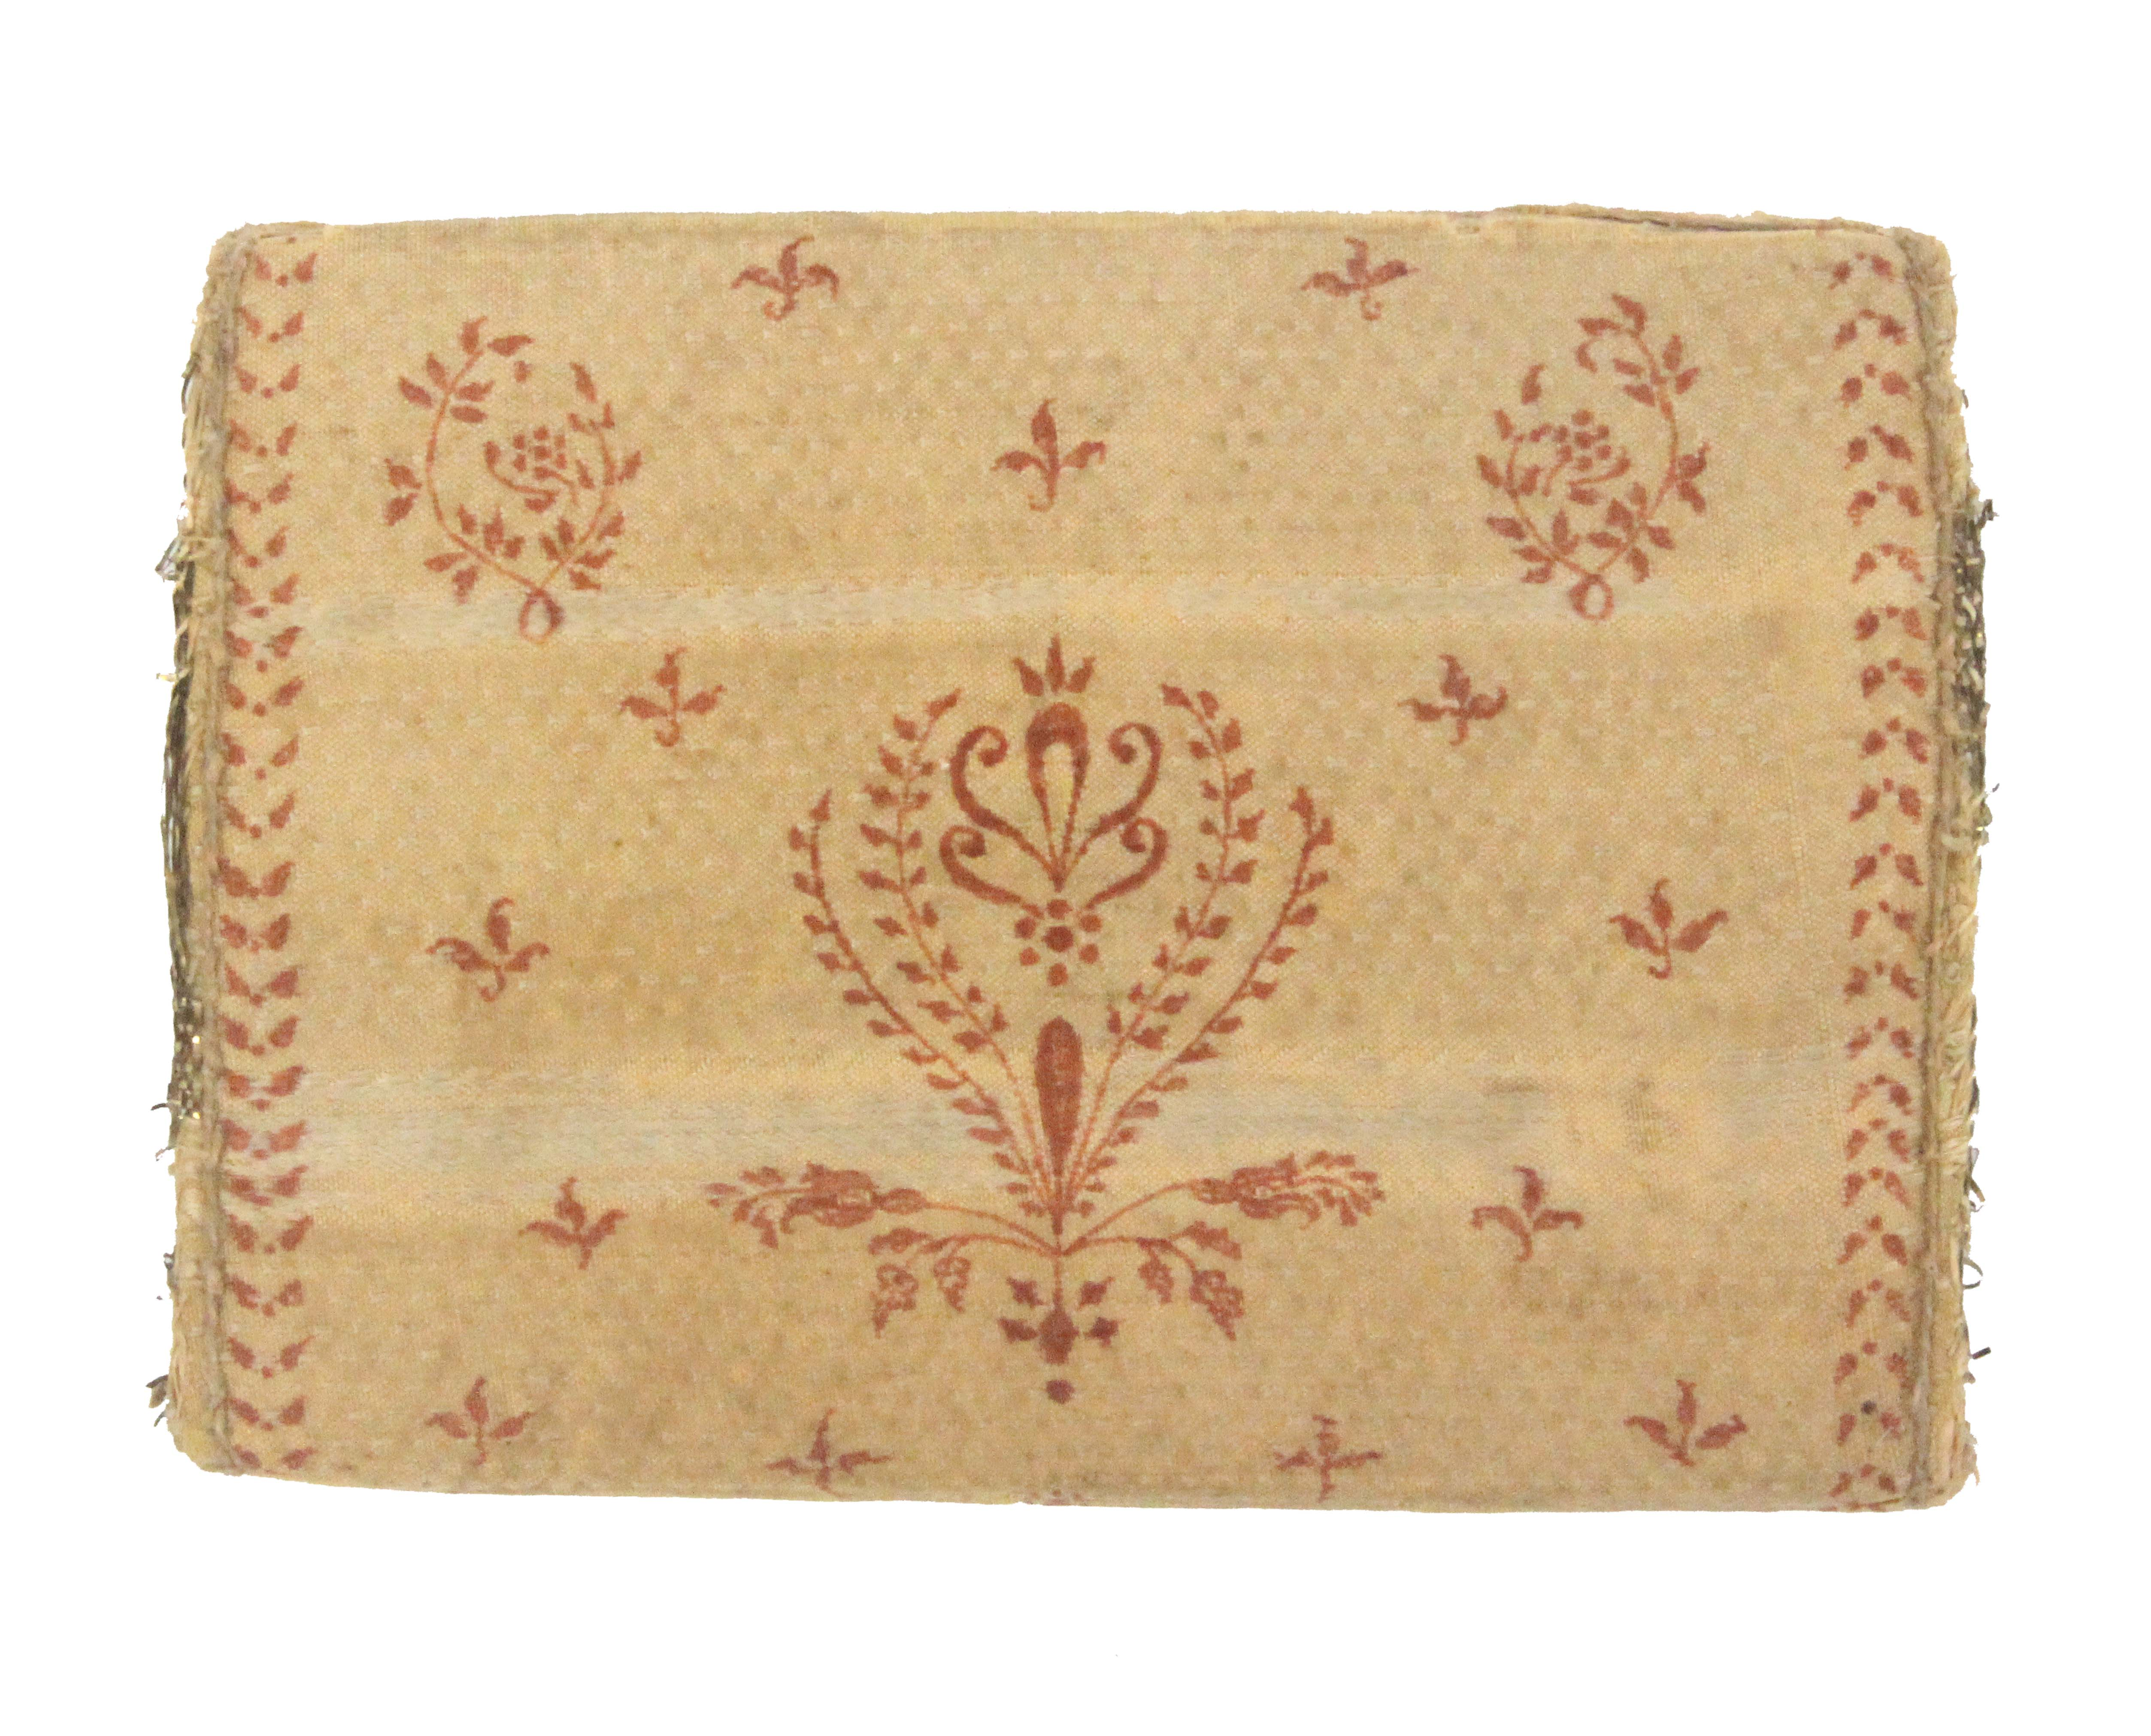 An 18th Century ivory silk sewing wallet, with anthemion and floral printed or painted decoration, - Image 3 of 3